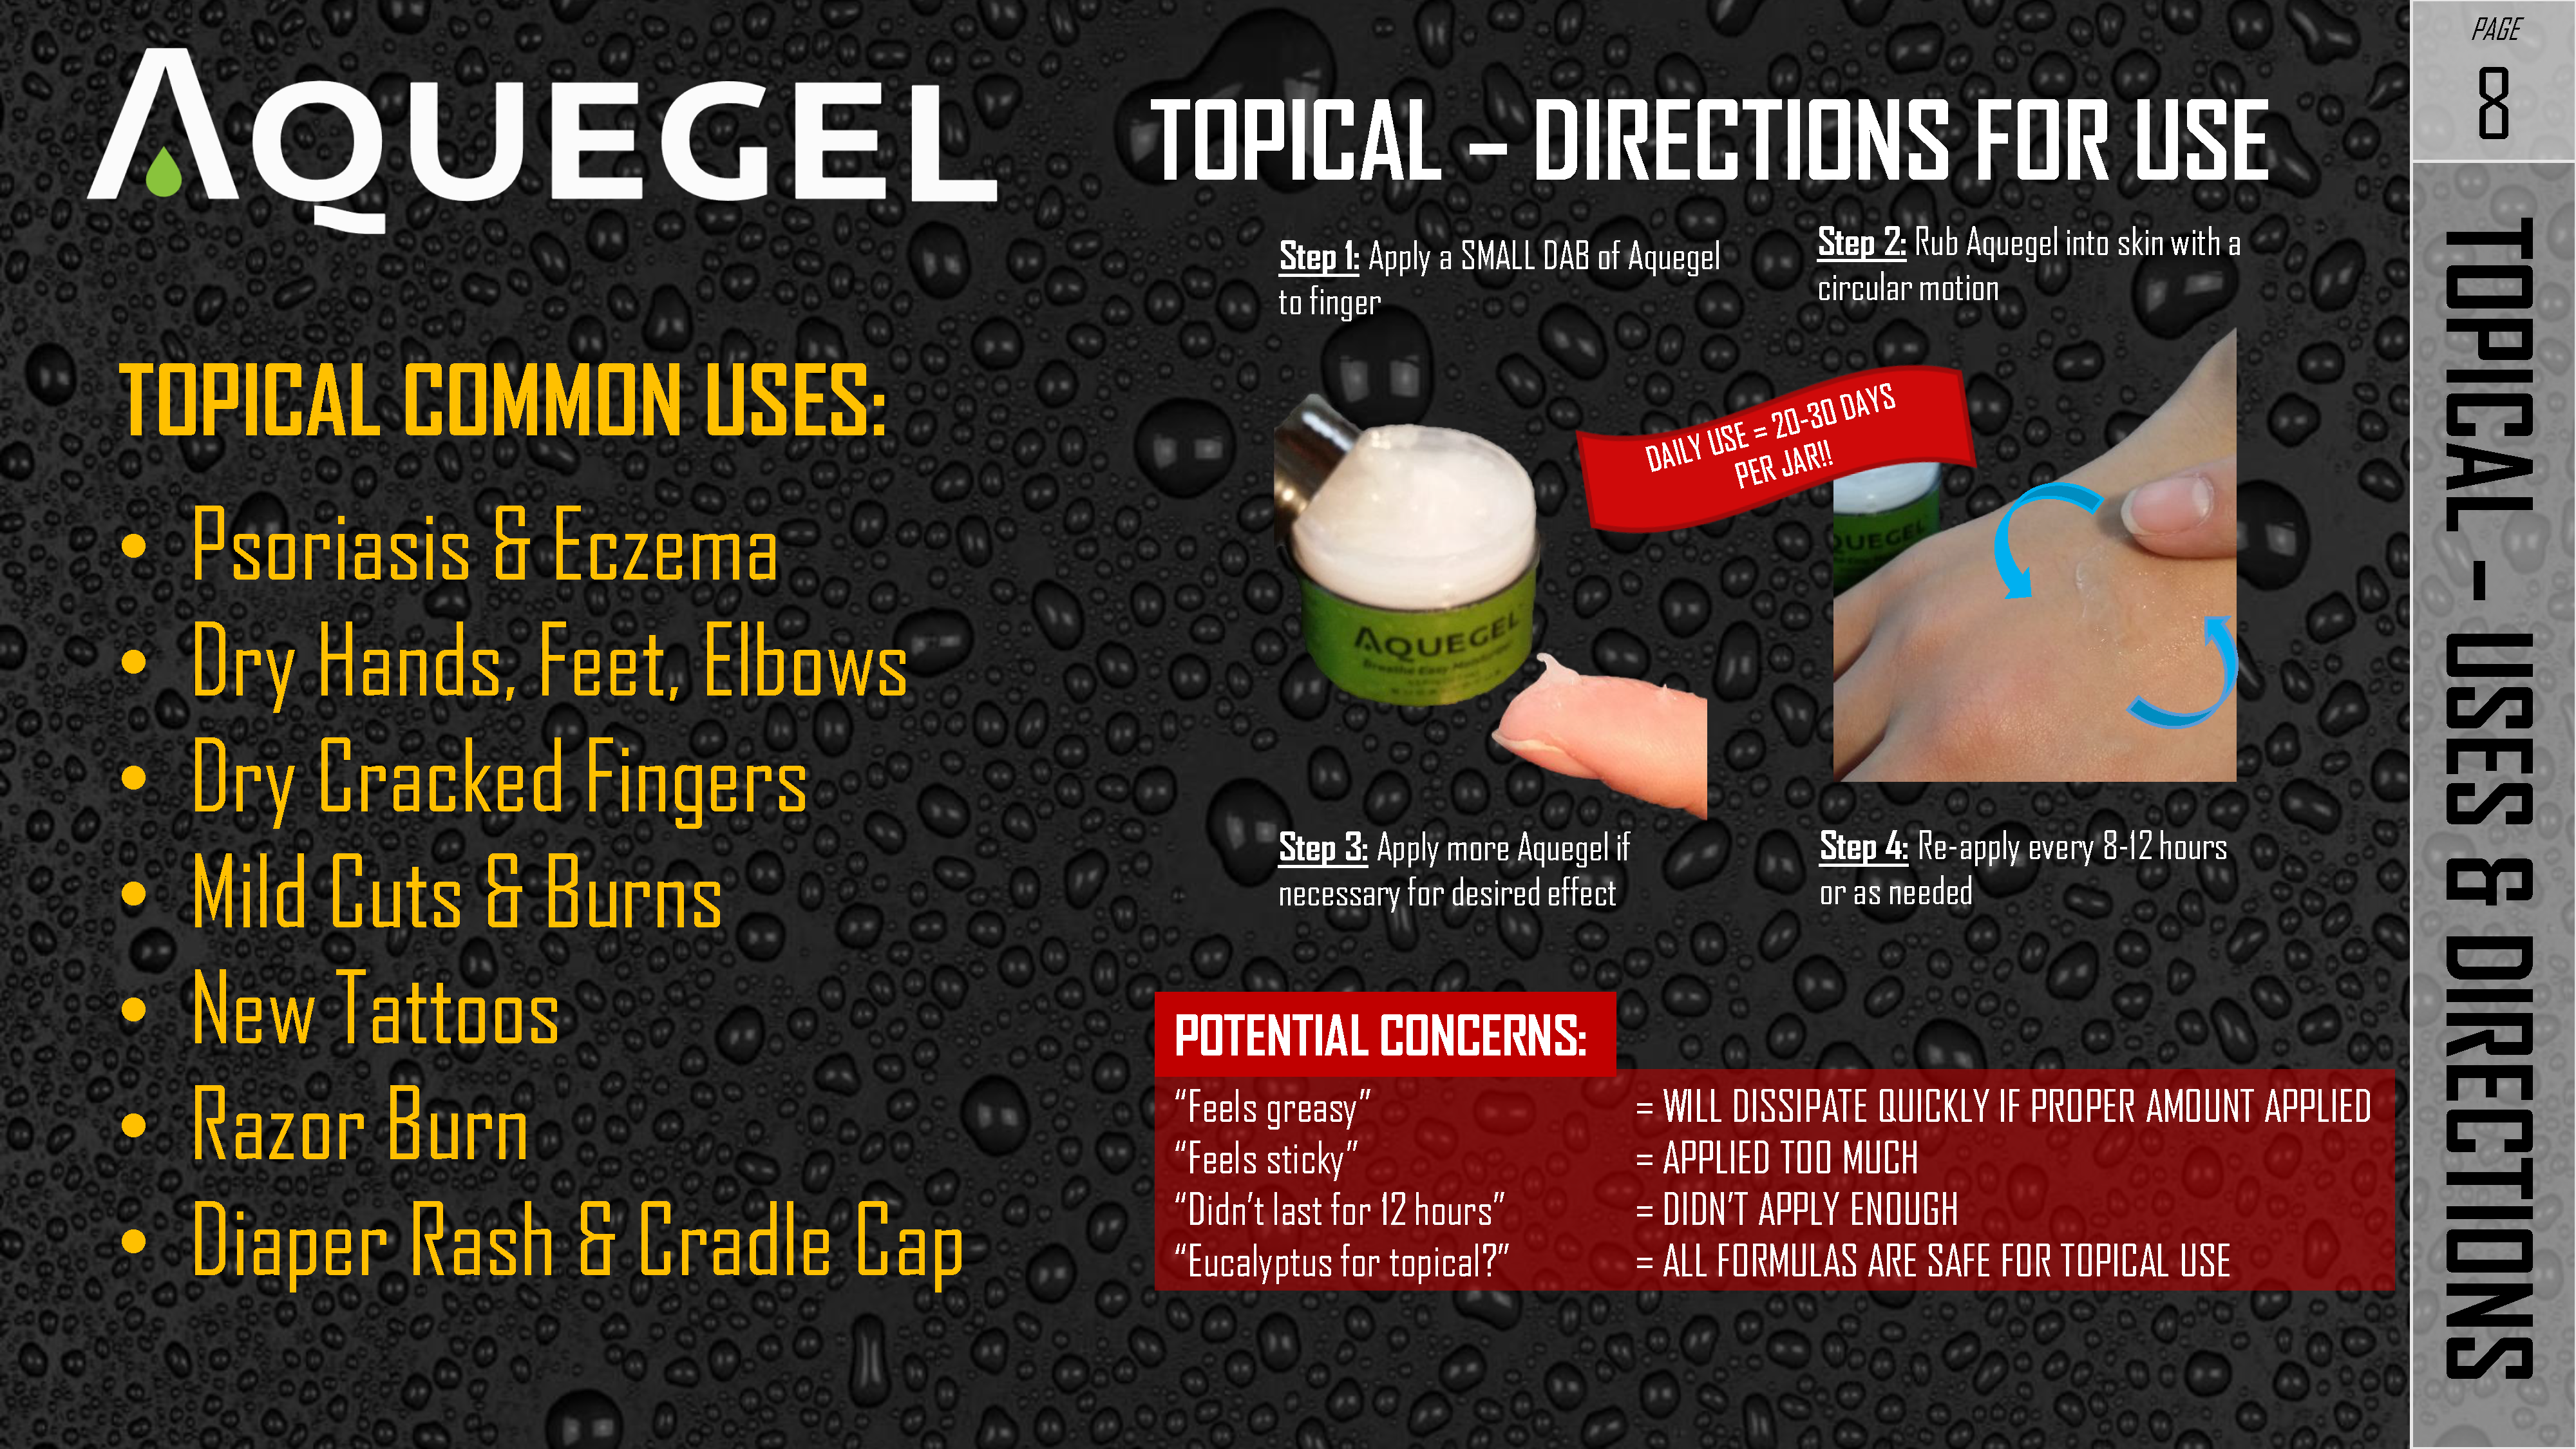 TOPICAL - USES DIRECTIONS - 8